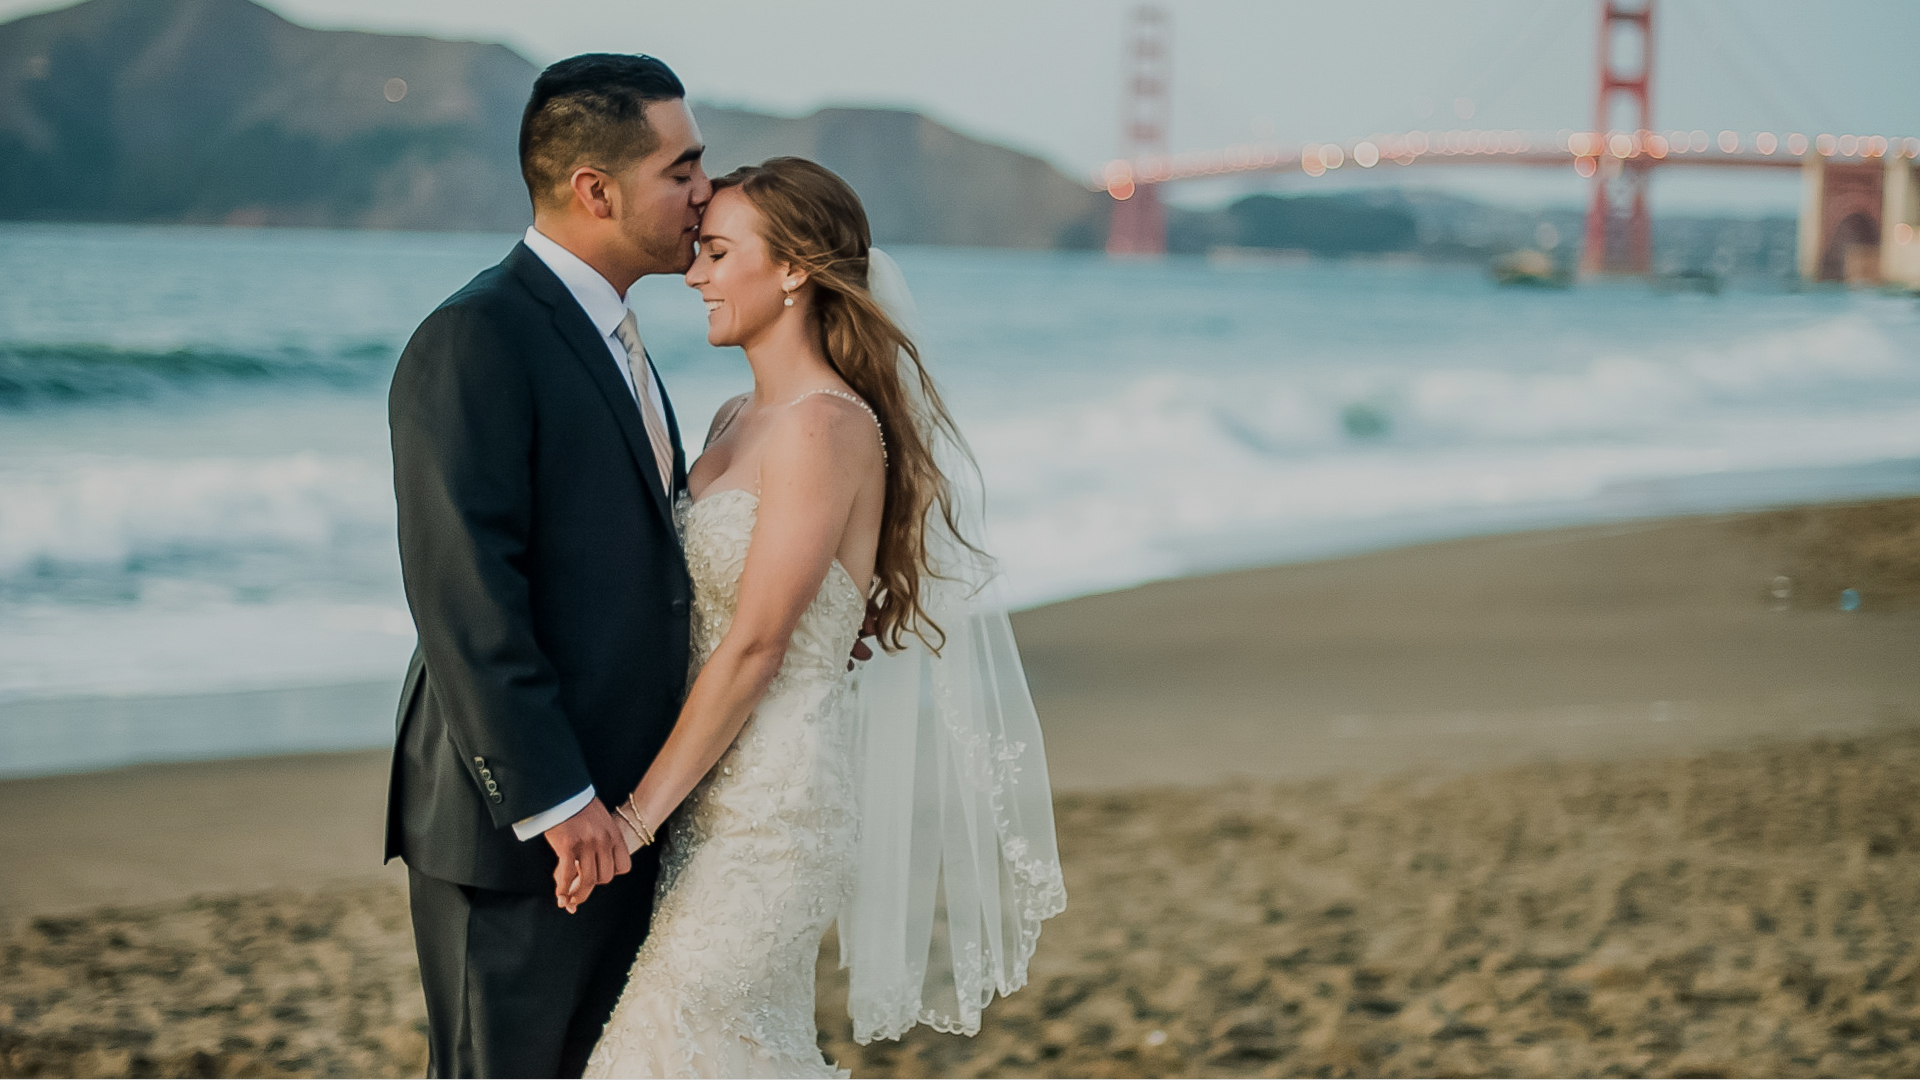 Check portfolios, pricing and availability for wedding photographers in San Francisco